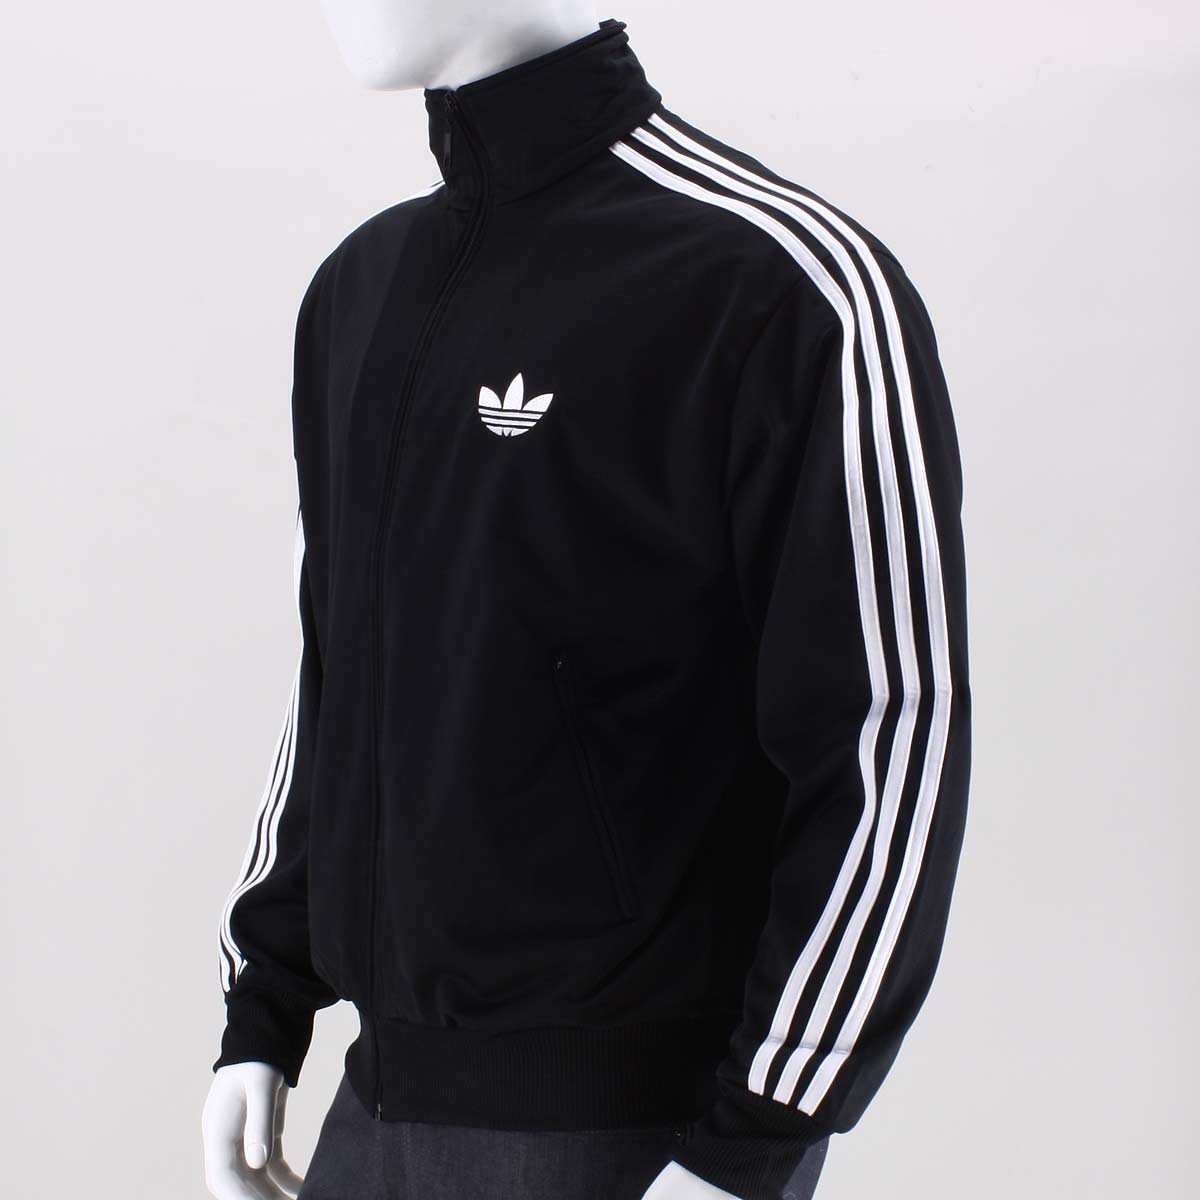 Original Adidas Mens Authentic Sports Track Top Firebird Jacket Black/White Trefoil Coat